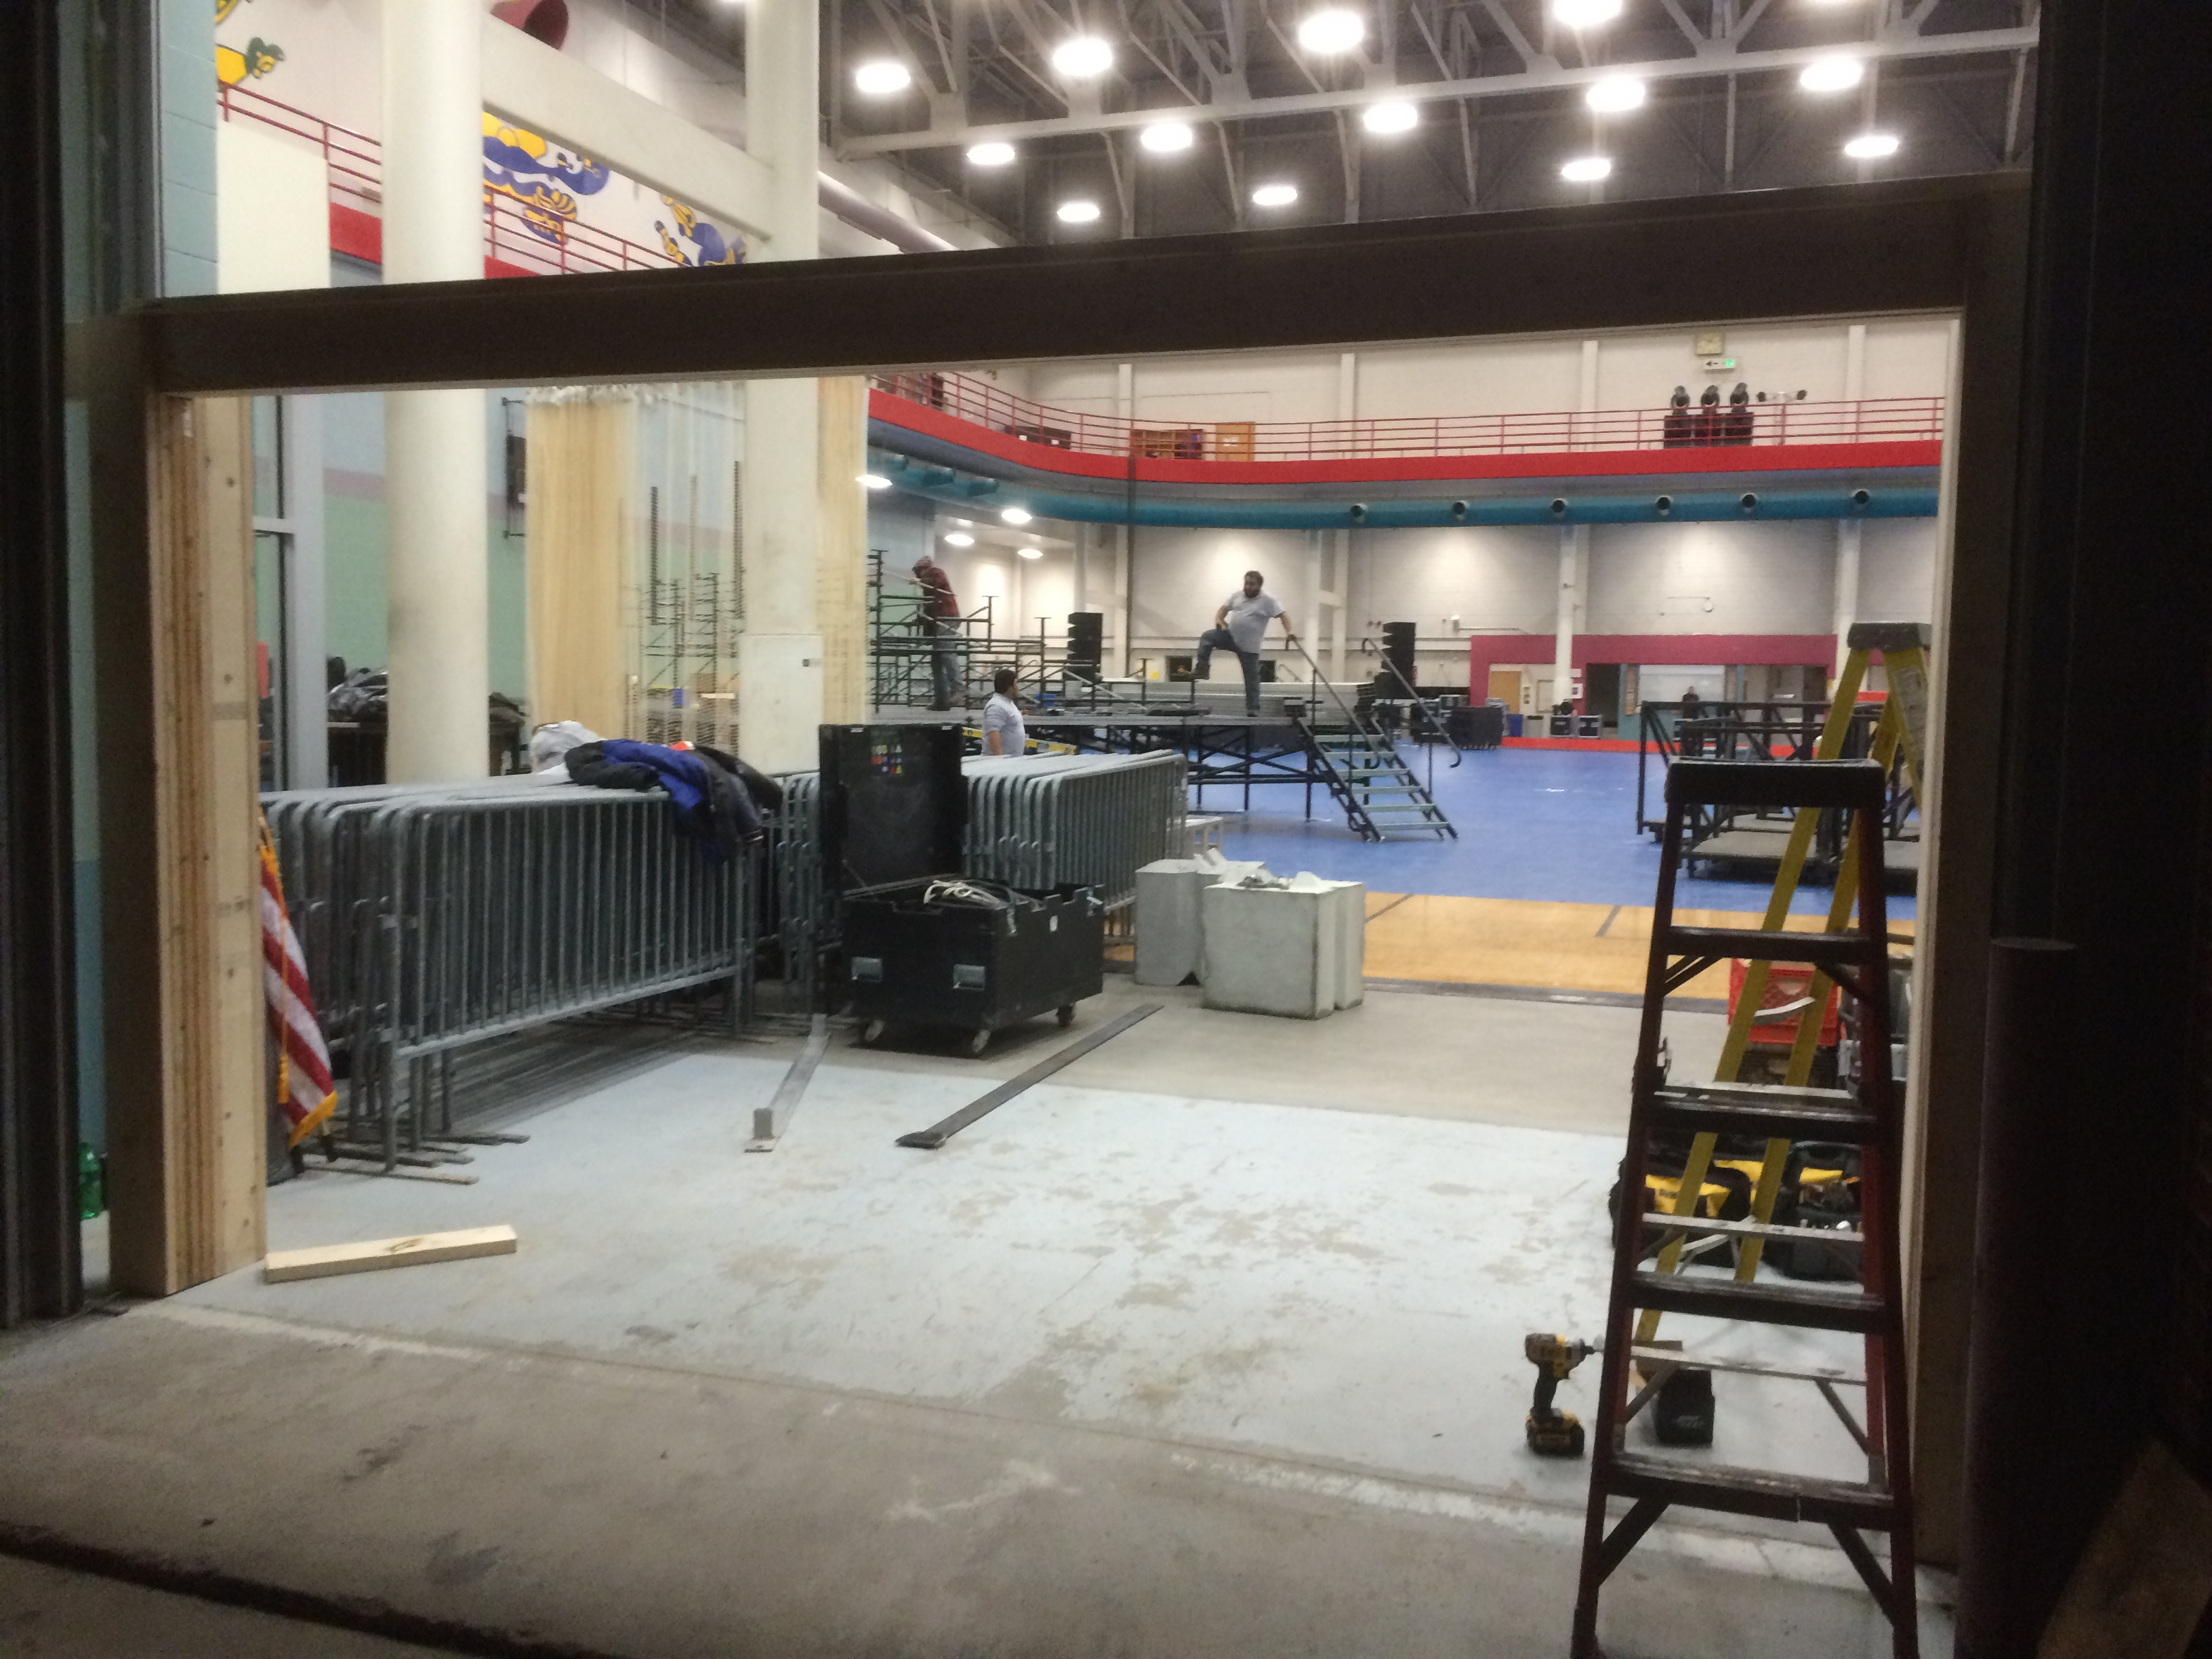 Frame for Temporary double glass door fire exits to increase event hall capacity